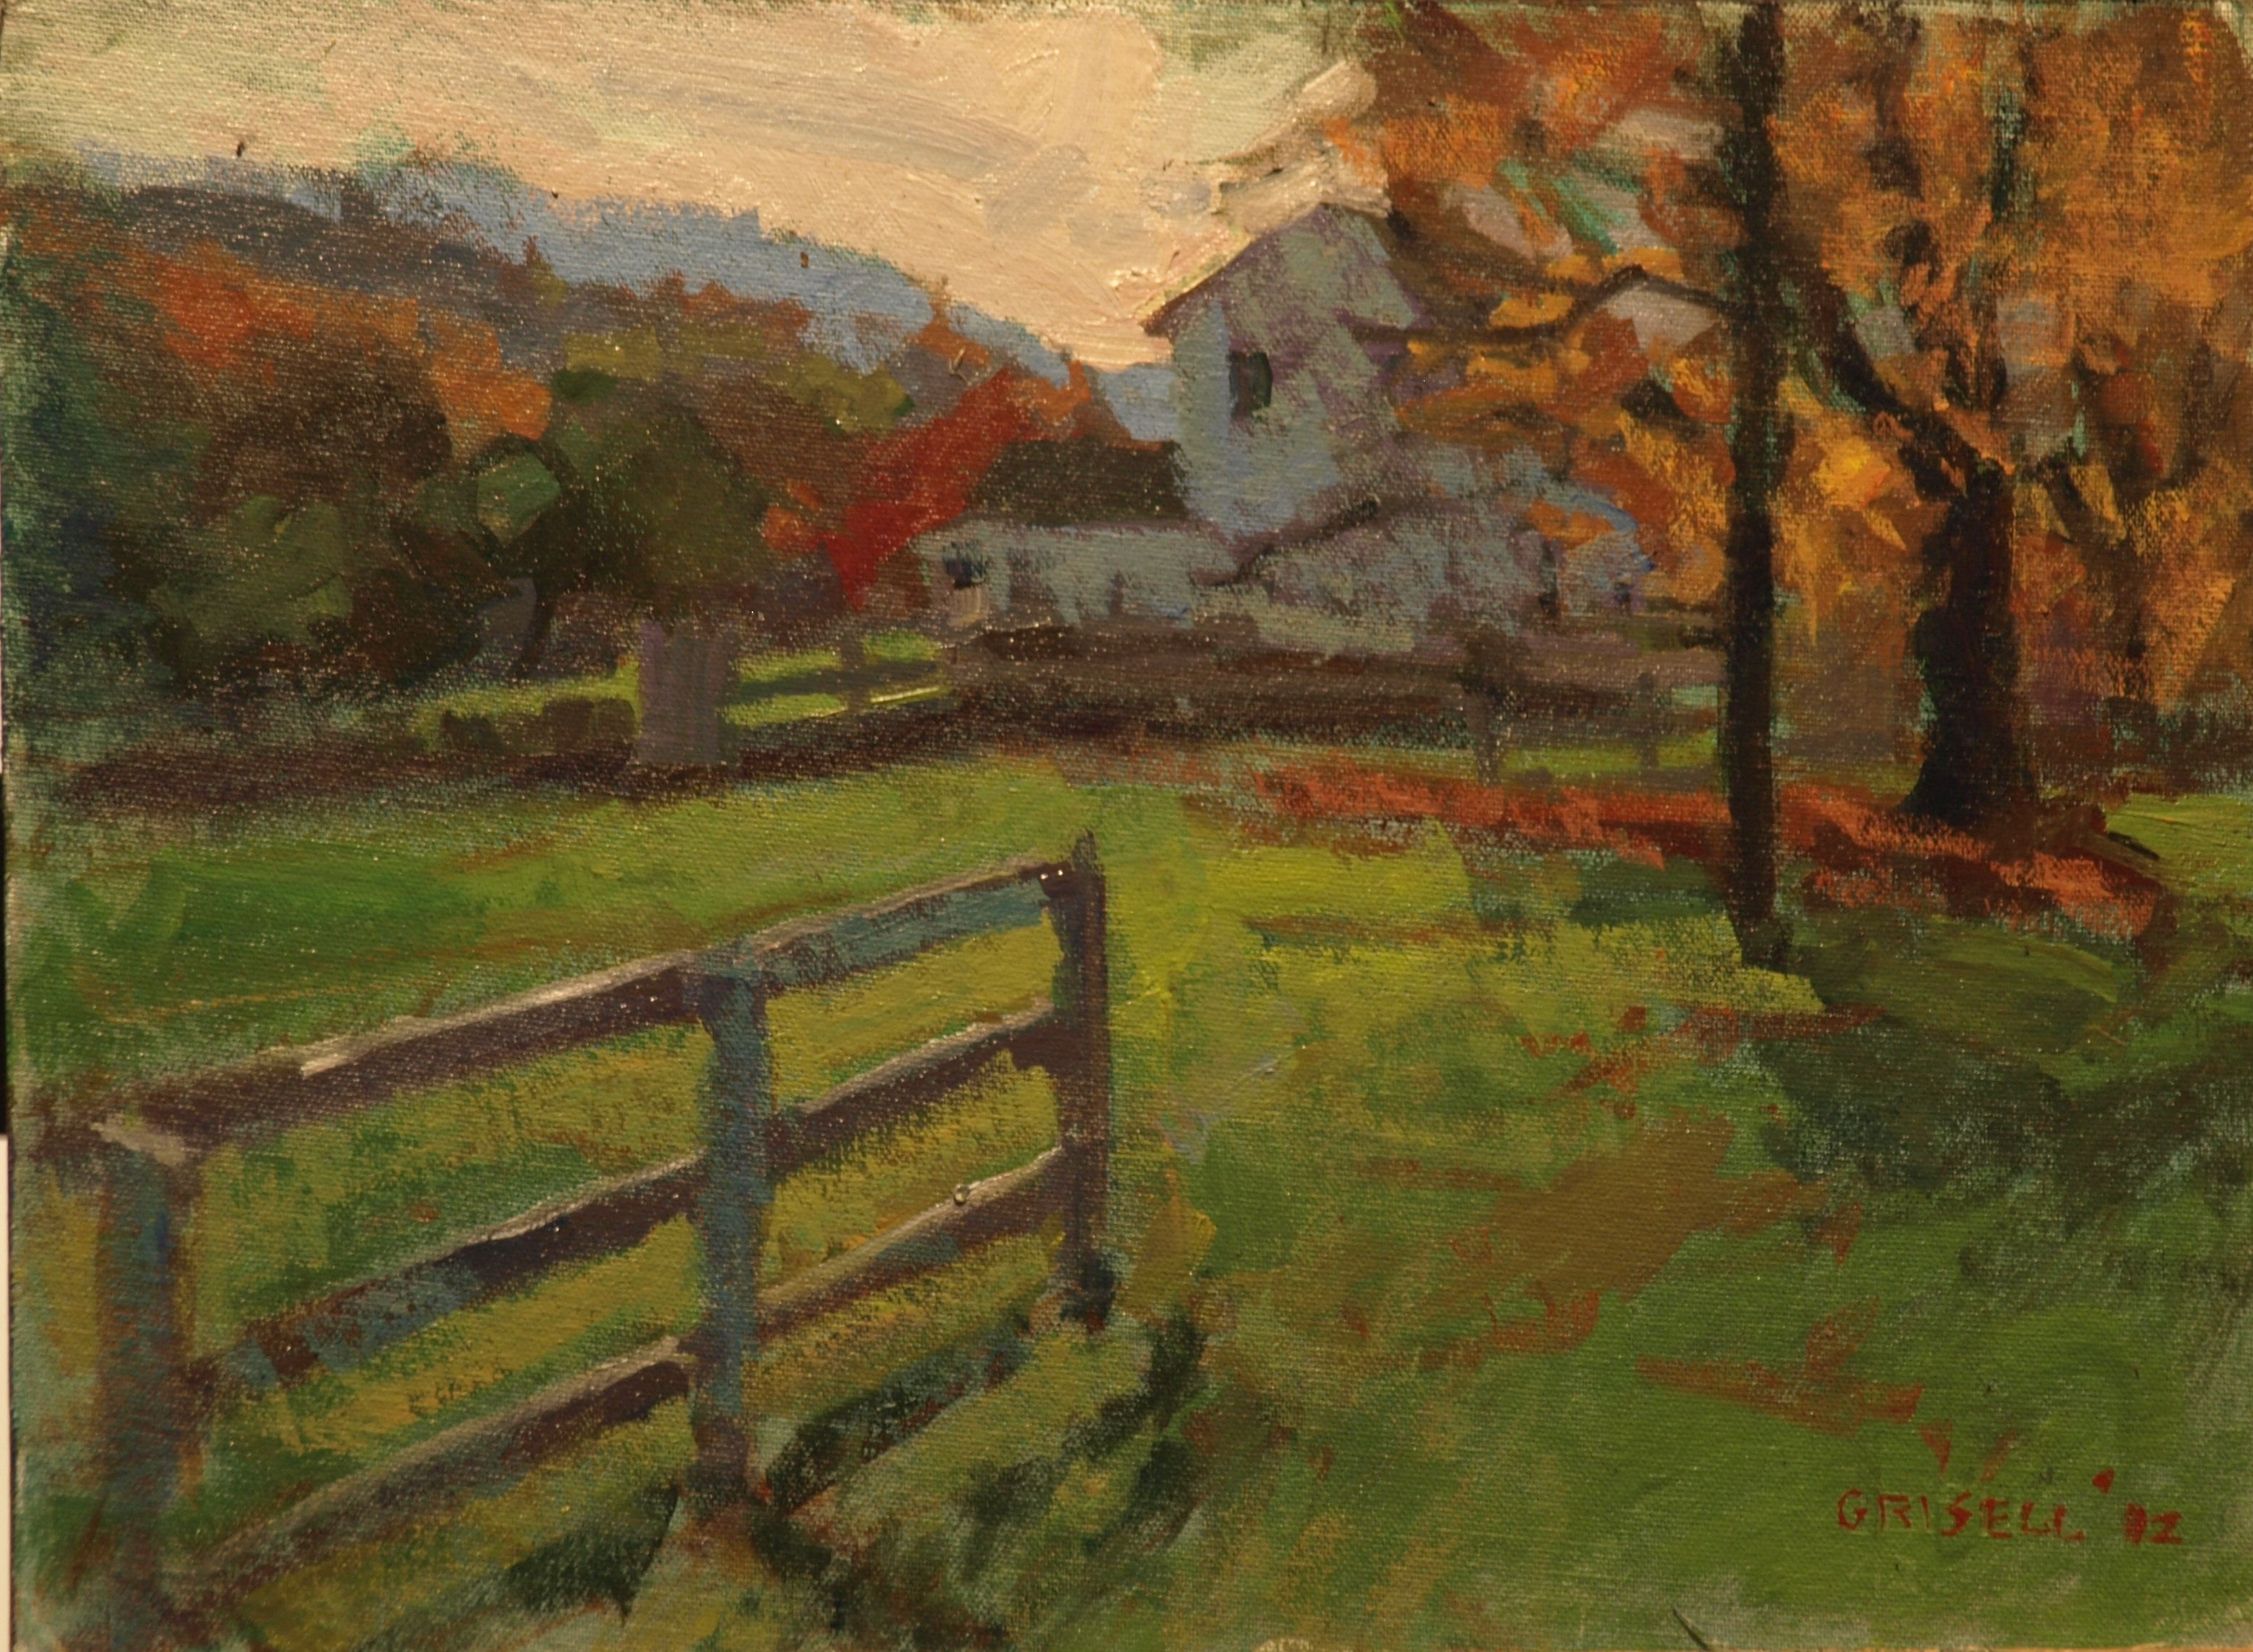 Fence and Farmhouse, Oil on Canvas on Panel, 12 x 16 Inches, by Susan Grisell, $275